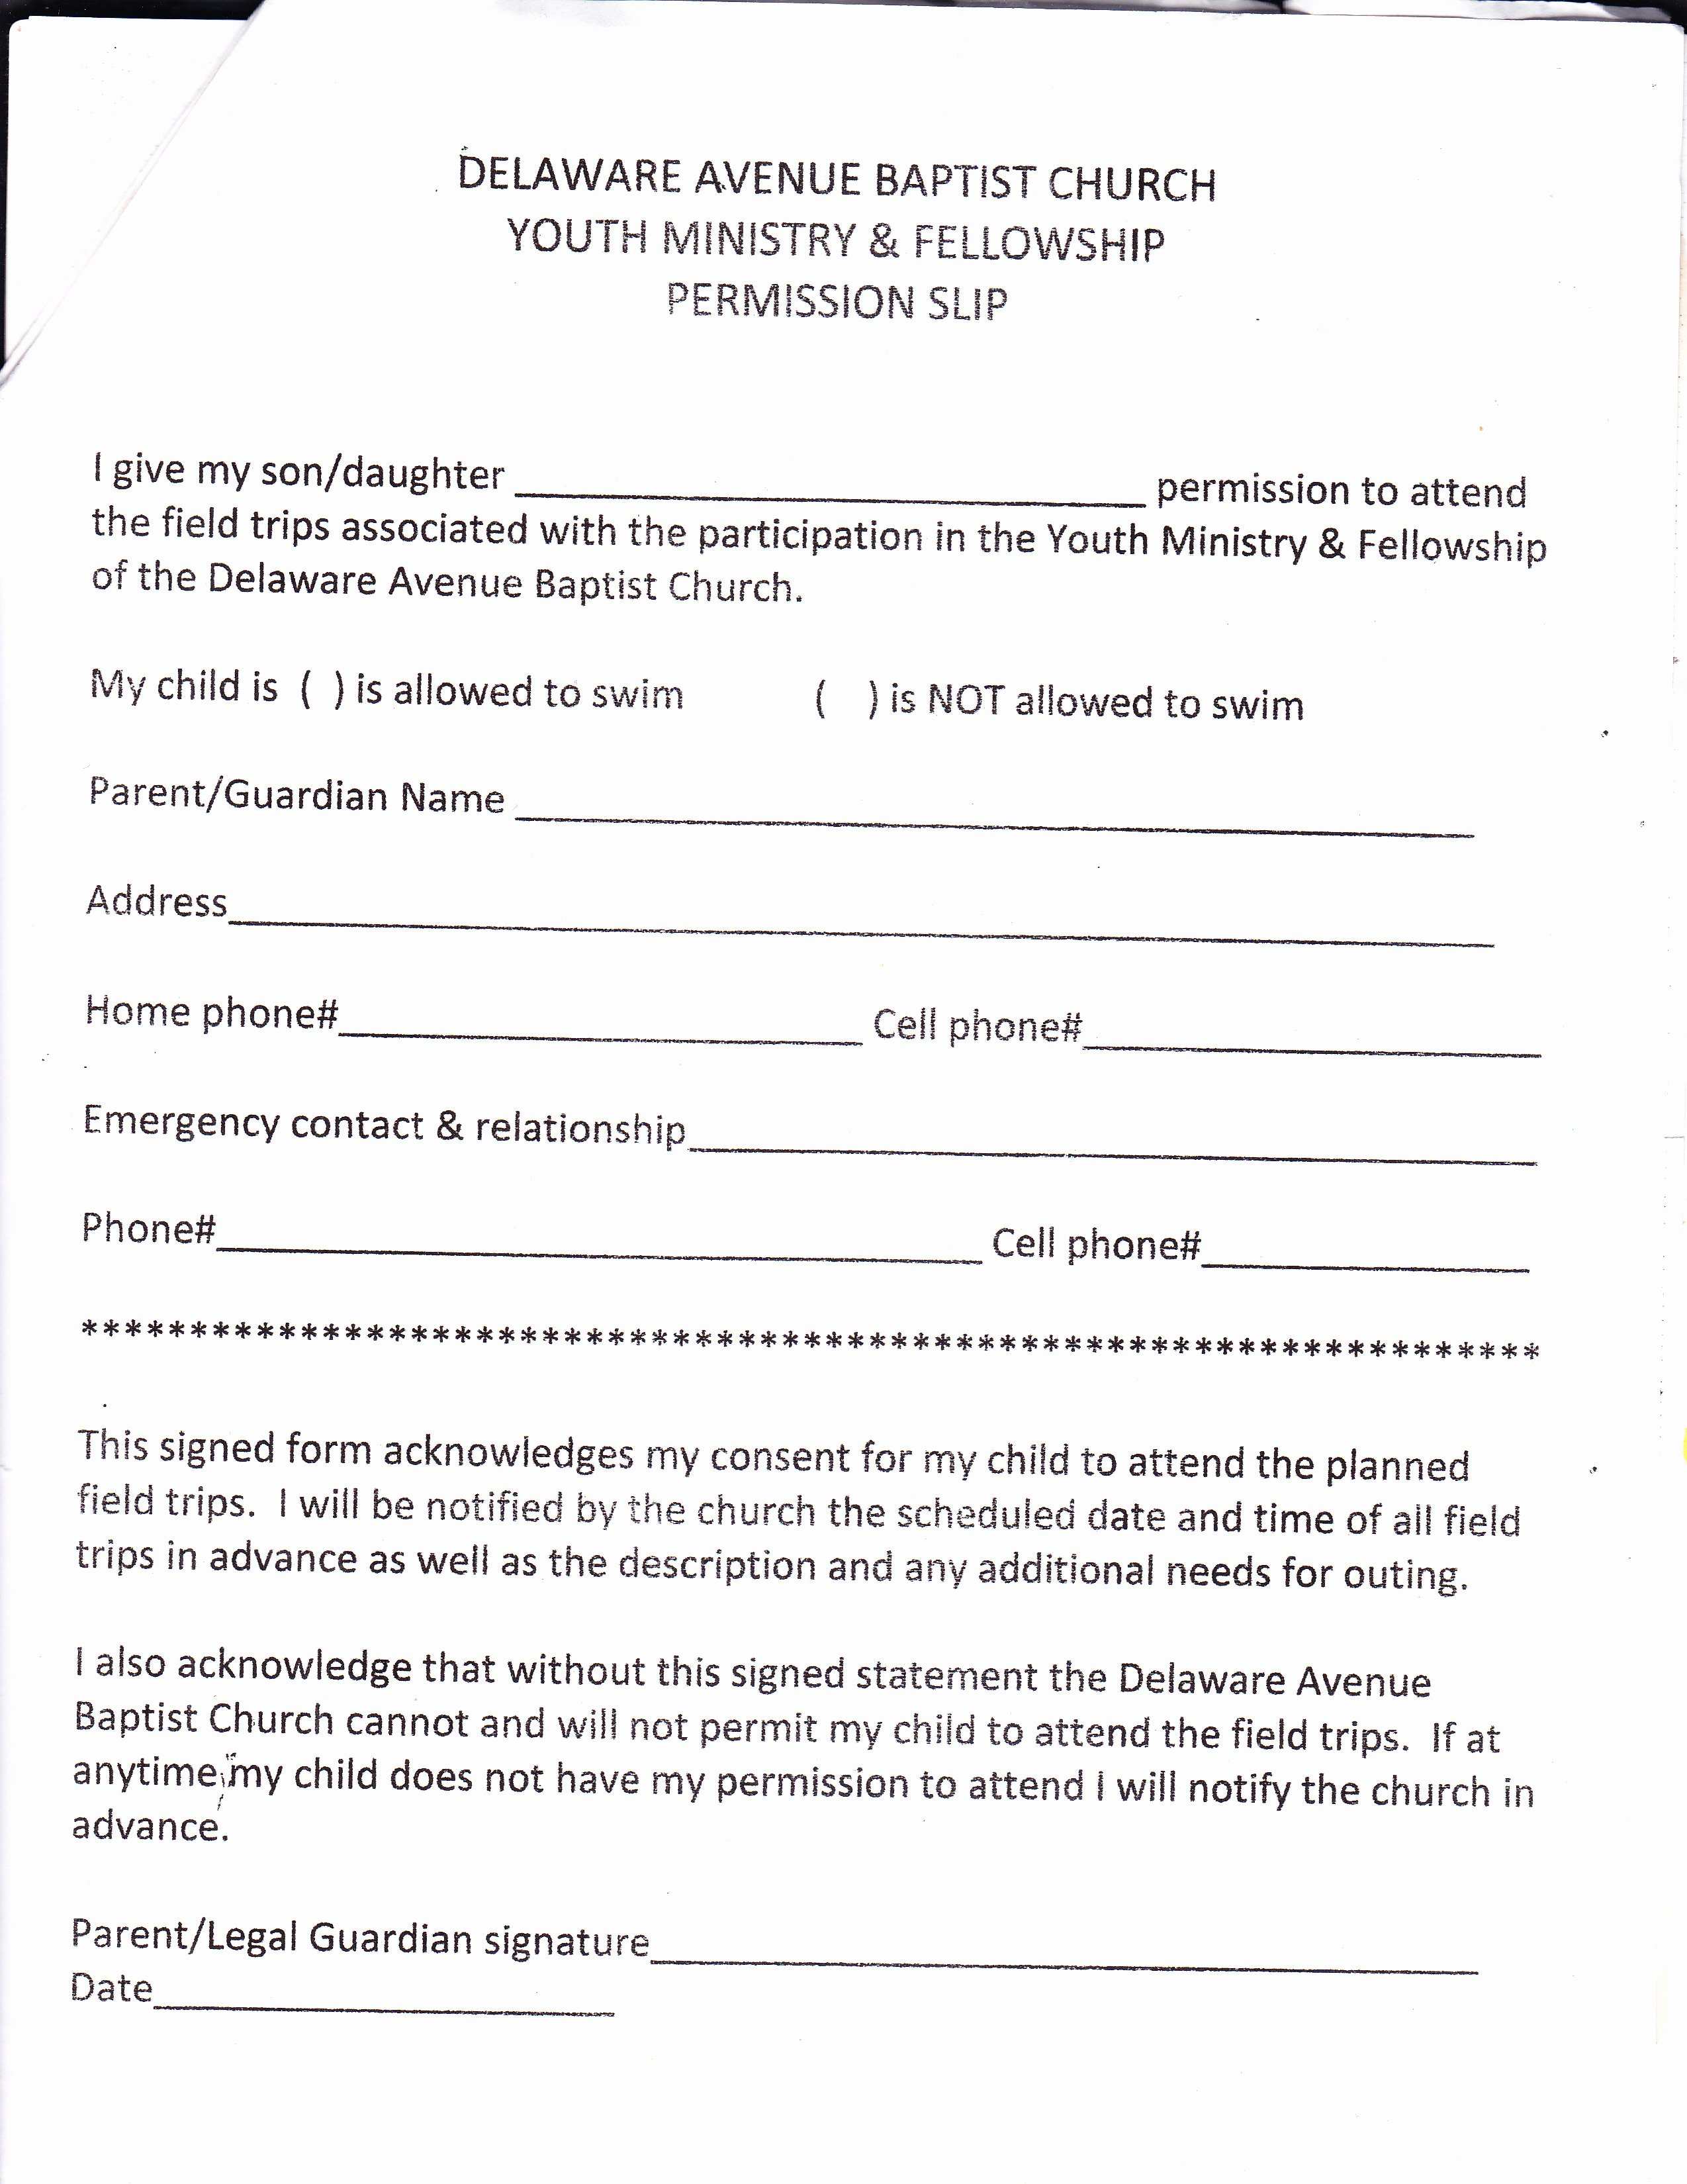 Church Field Trip Permission Slip Luxury Youth Ministry – Delaware Avenue Baptist Church